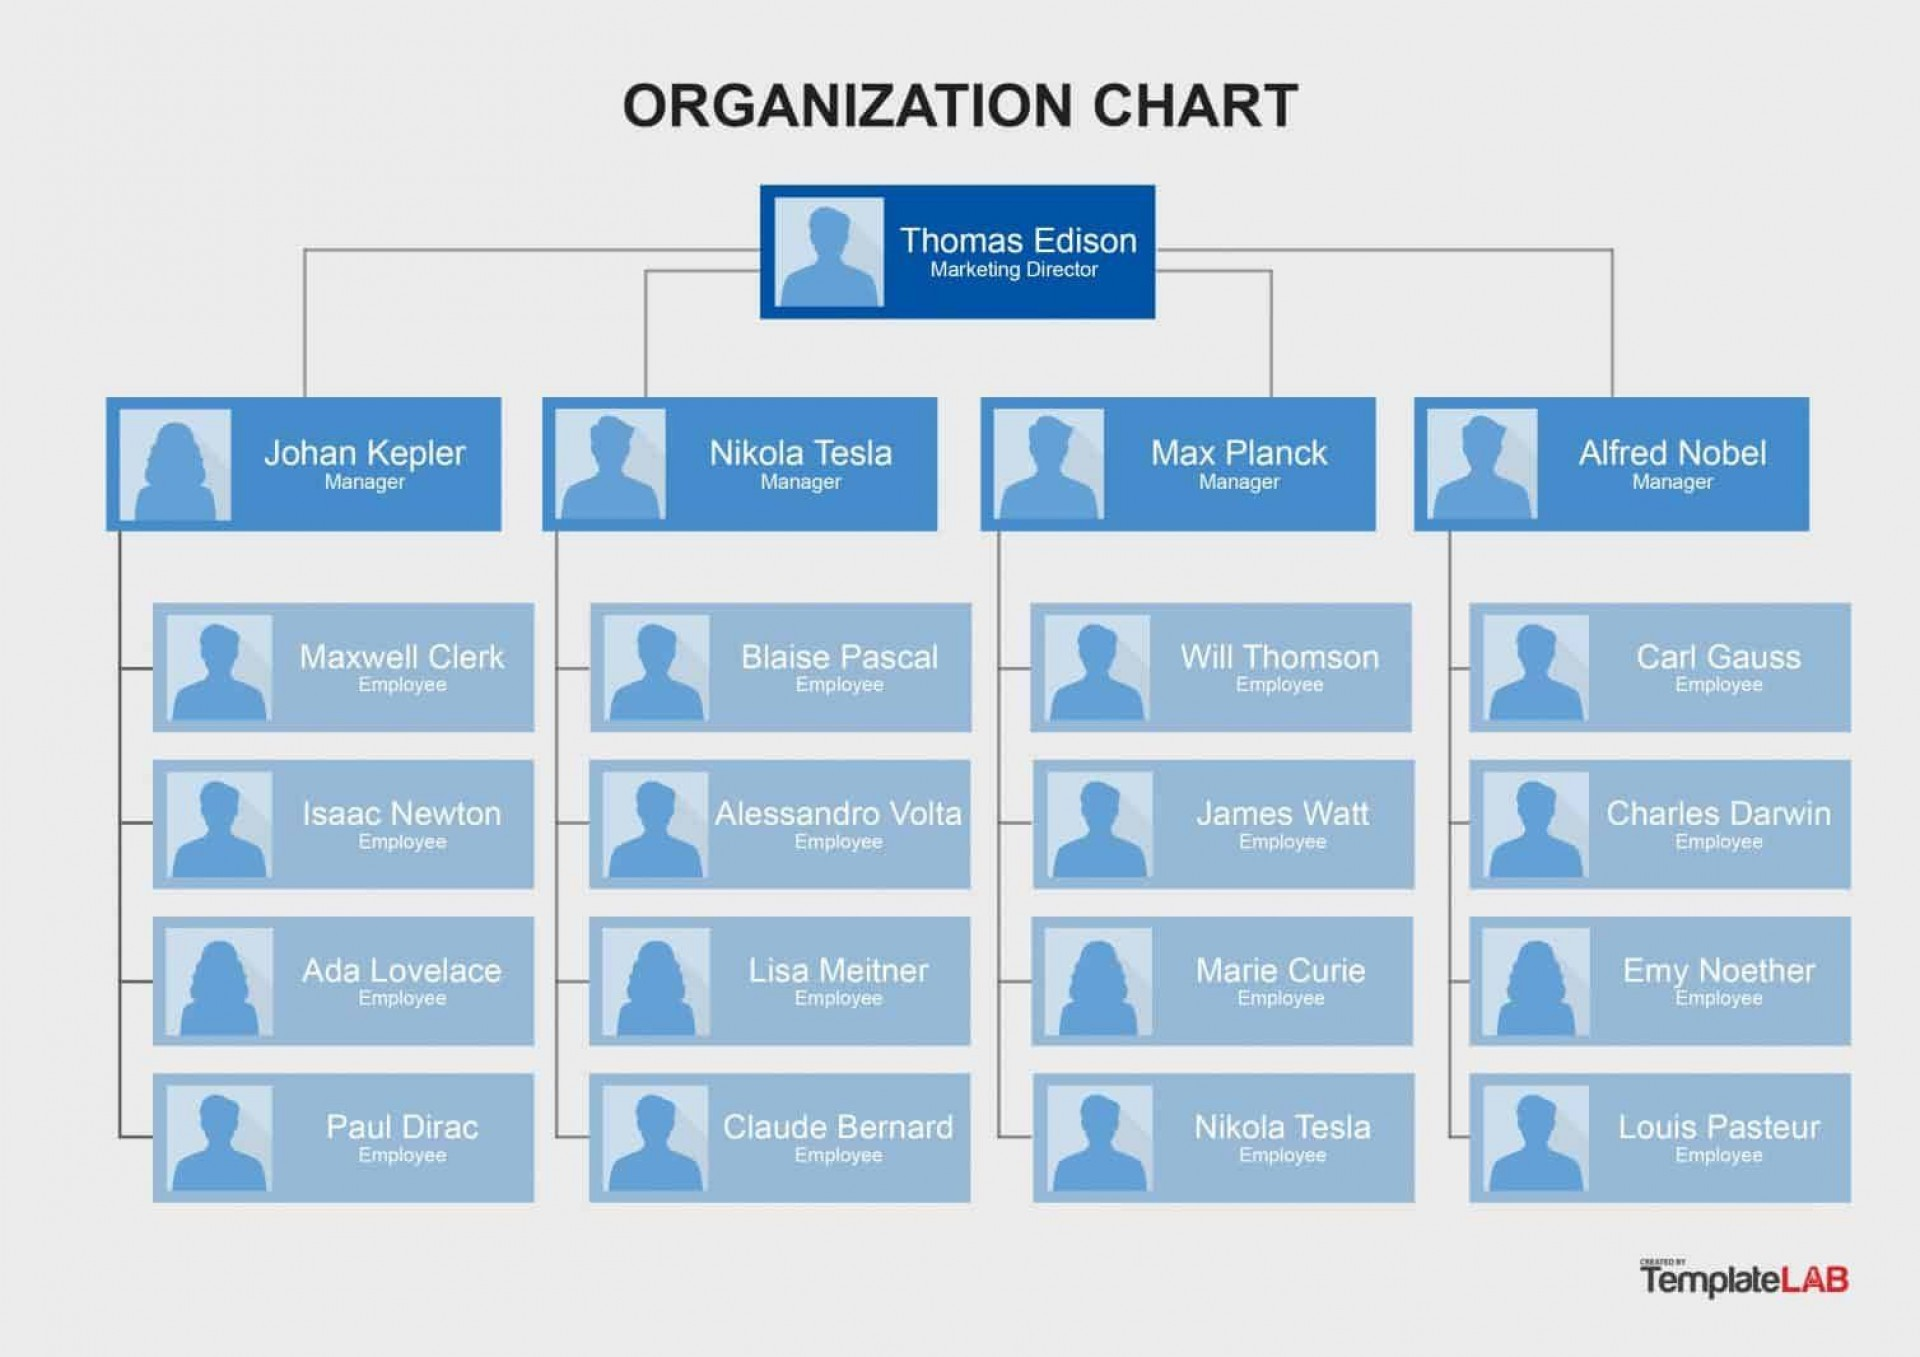 008 Awesome M Word Org Chart Template Concept  Organizational Free Download1920